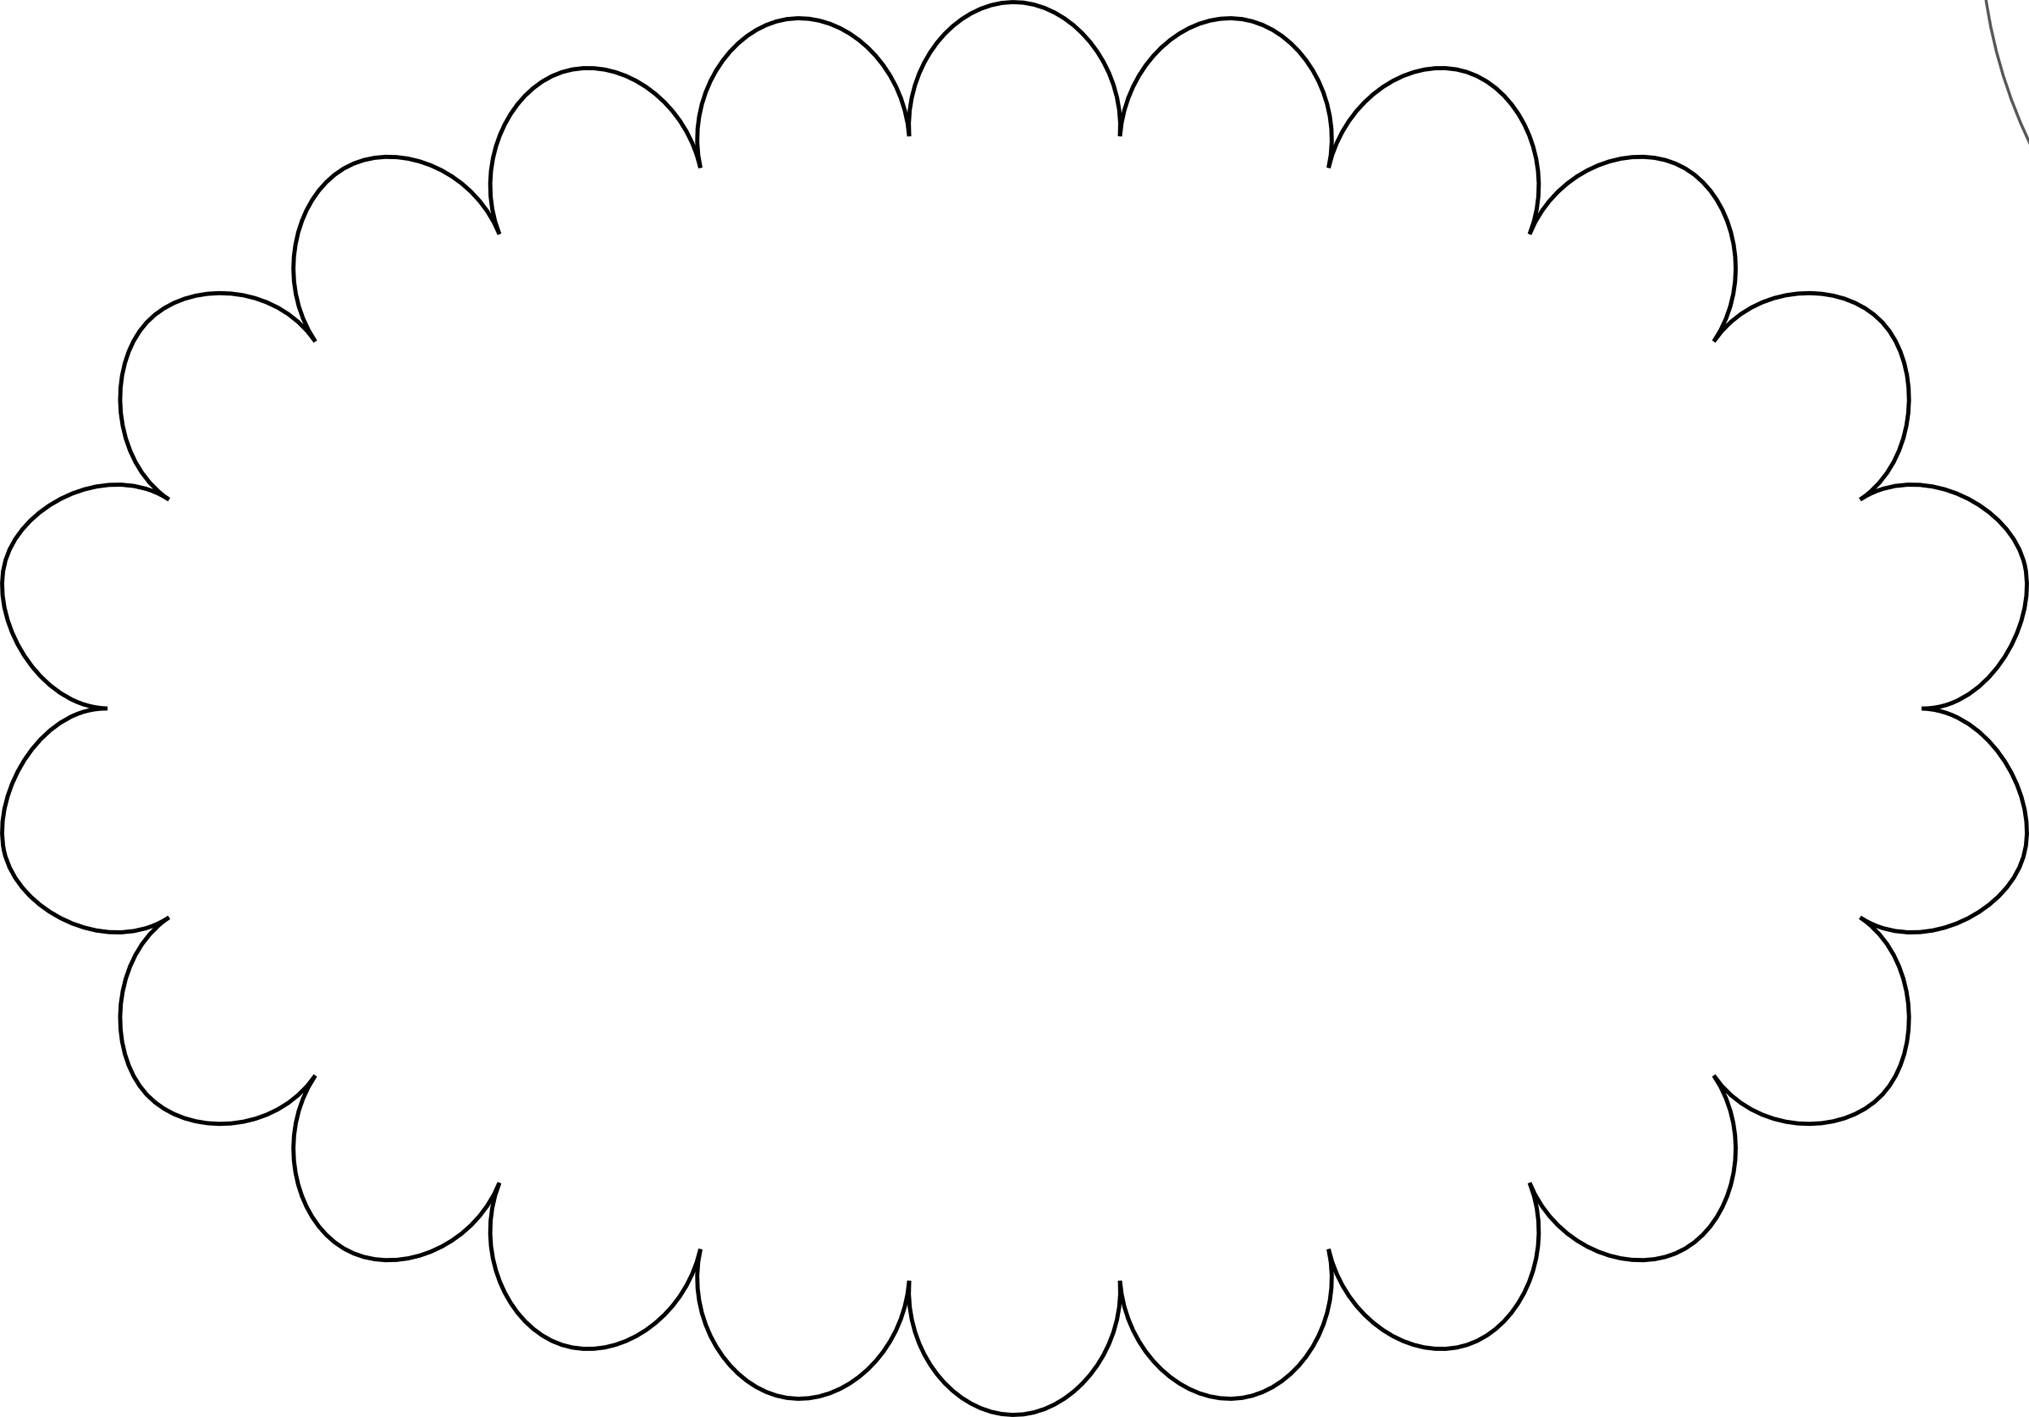 templates and printables on pinterest 38 images on